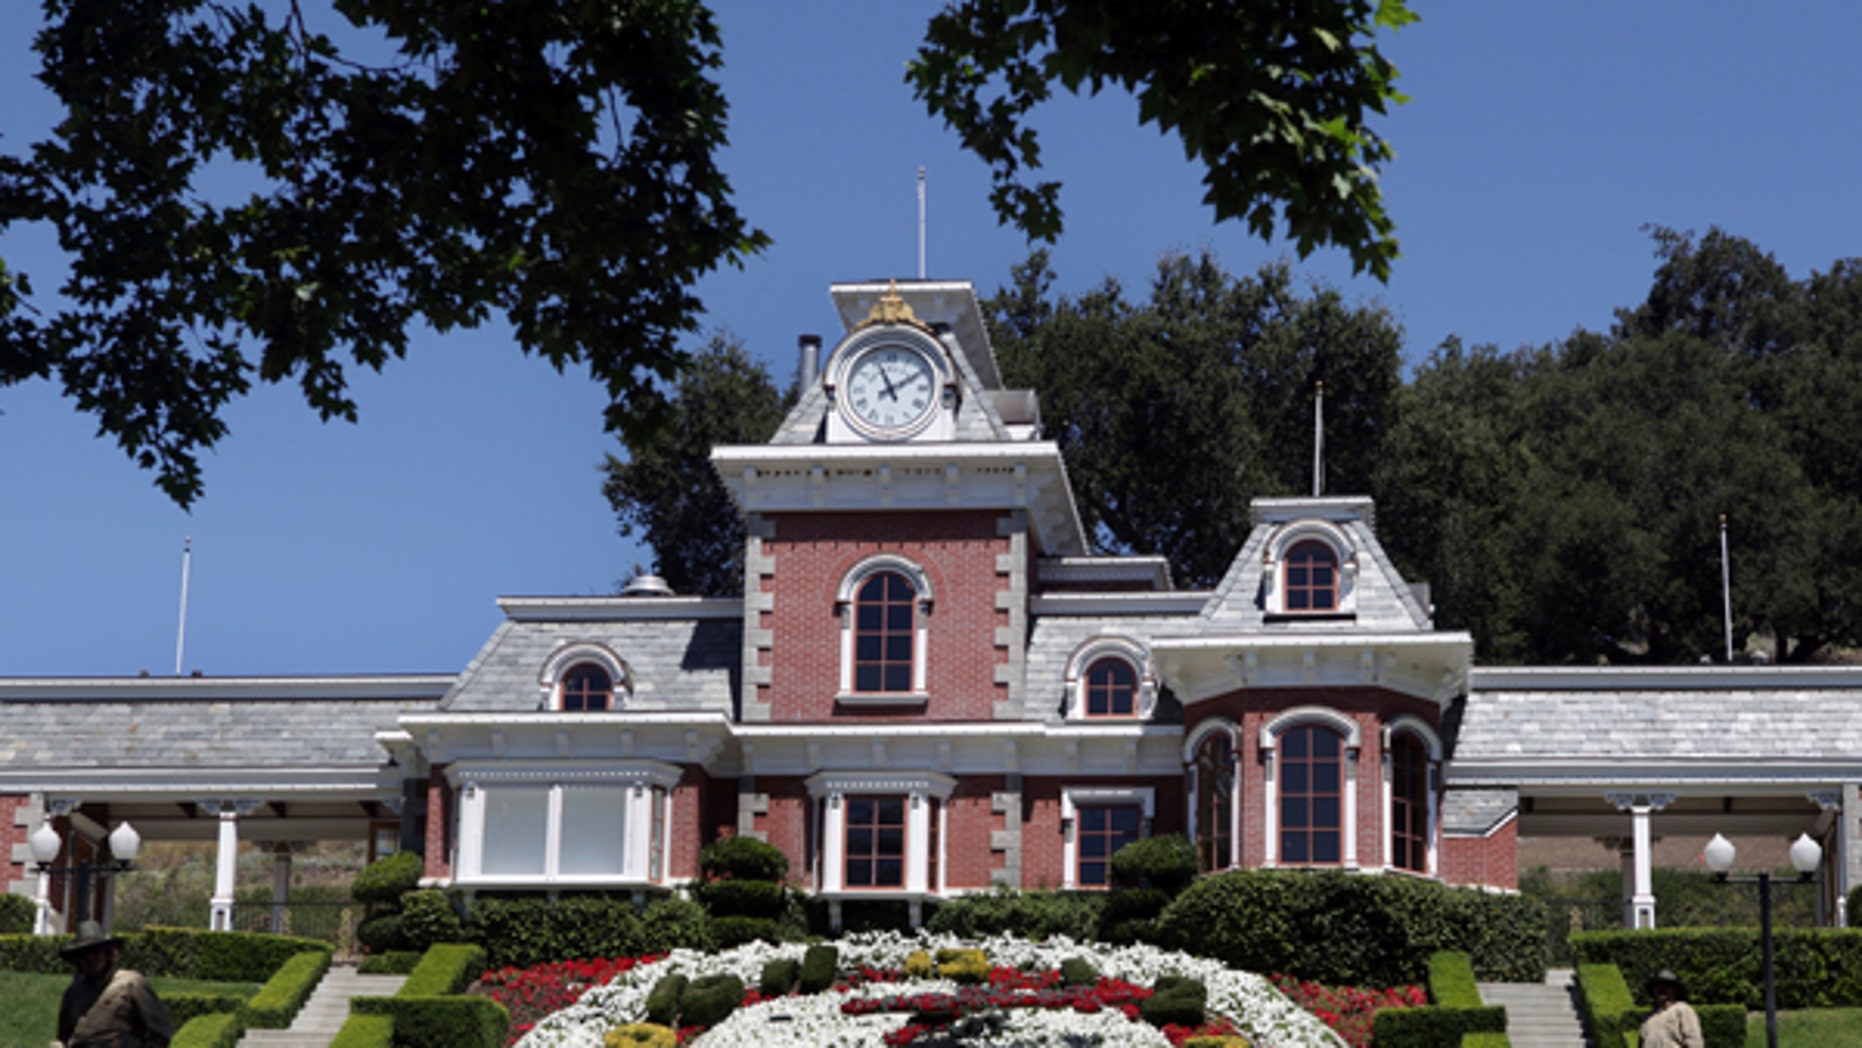 FILE - In this July 2, 2009, file photo, workers standby at the train station at Neverland Ranch in Los Olivos, Calif. Michael Jackson's former home has been renamed Sycamore Valley Ranch. The Los Angeles Times reported March 1, 2017, that it had been relisted for sale for $67 million. (AP Photo/Carolyn Kaster, File)